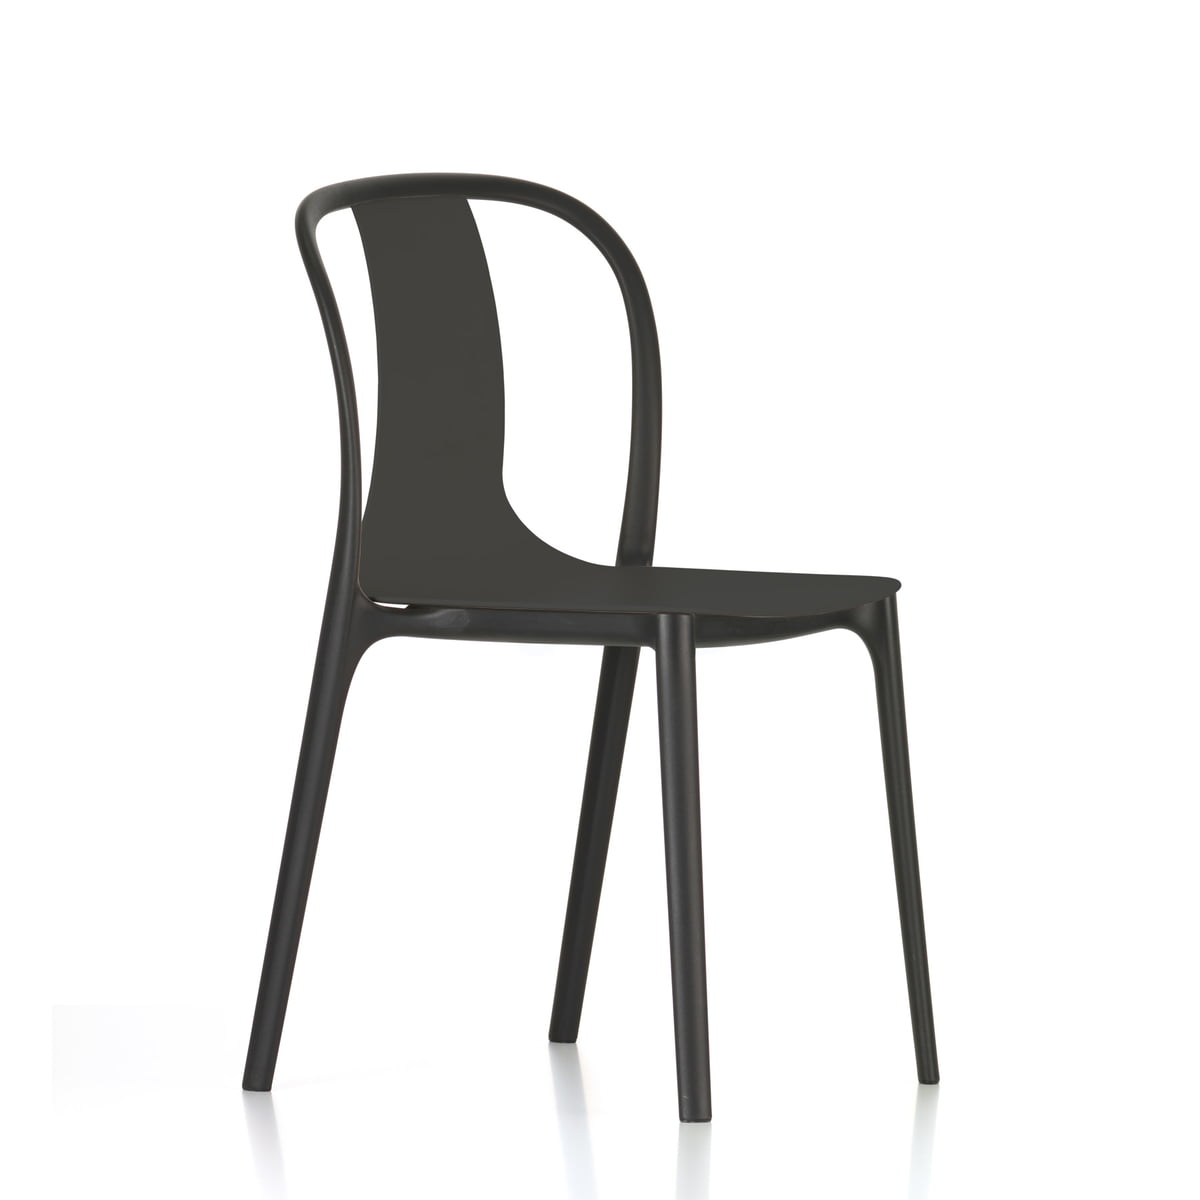 Attrayant Belleville Chair Plastic By Vitra In Deep Black